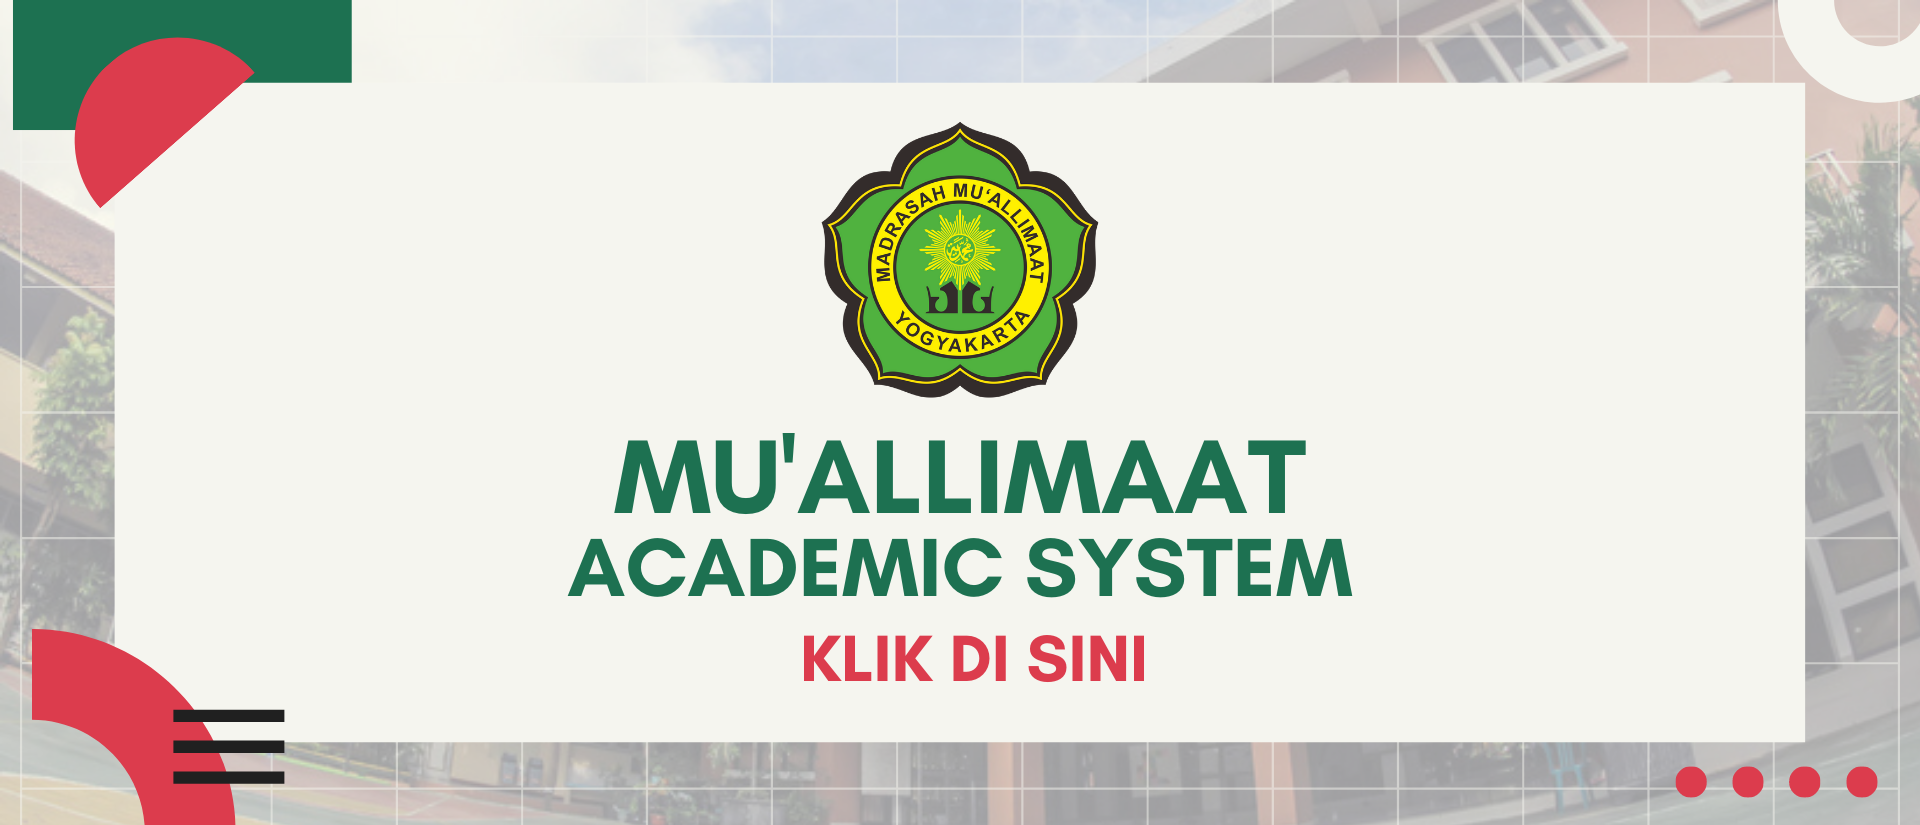 Mu'allimaat Academic System